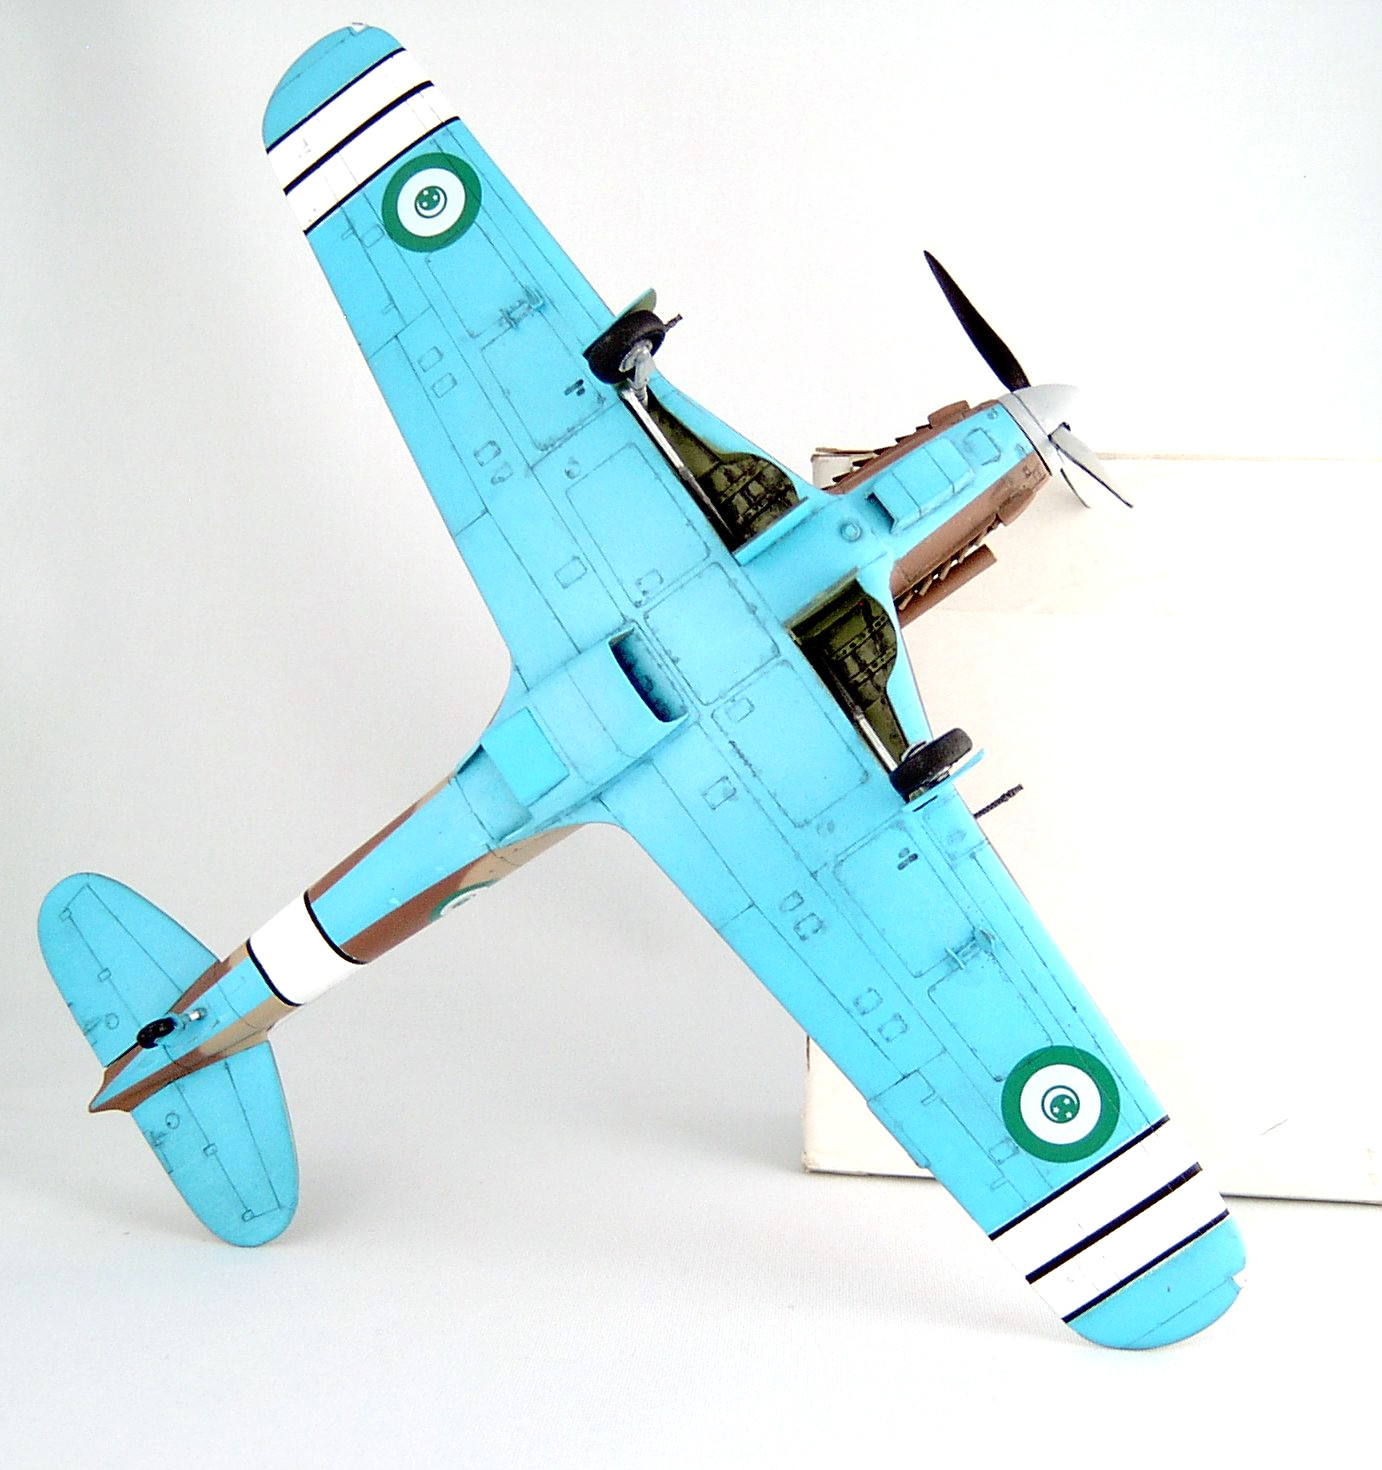 STORMO! Special Hobby 1/48 FIAT G 55A by Vince Tassone